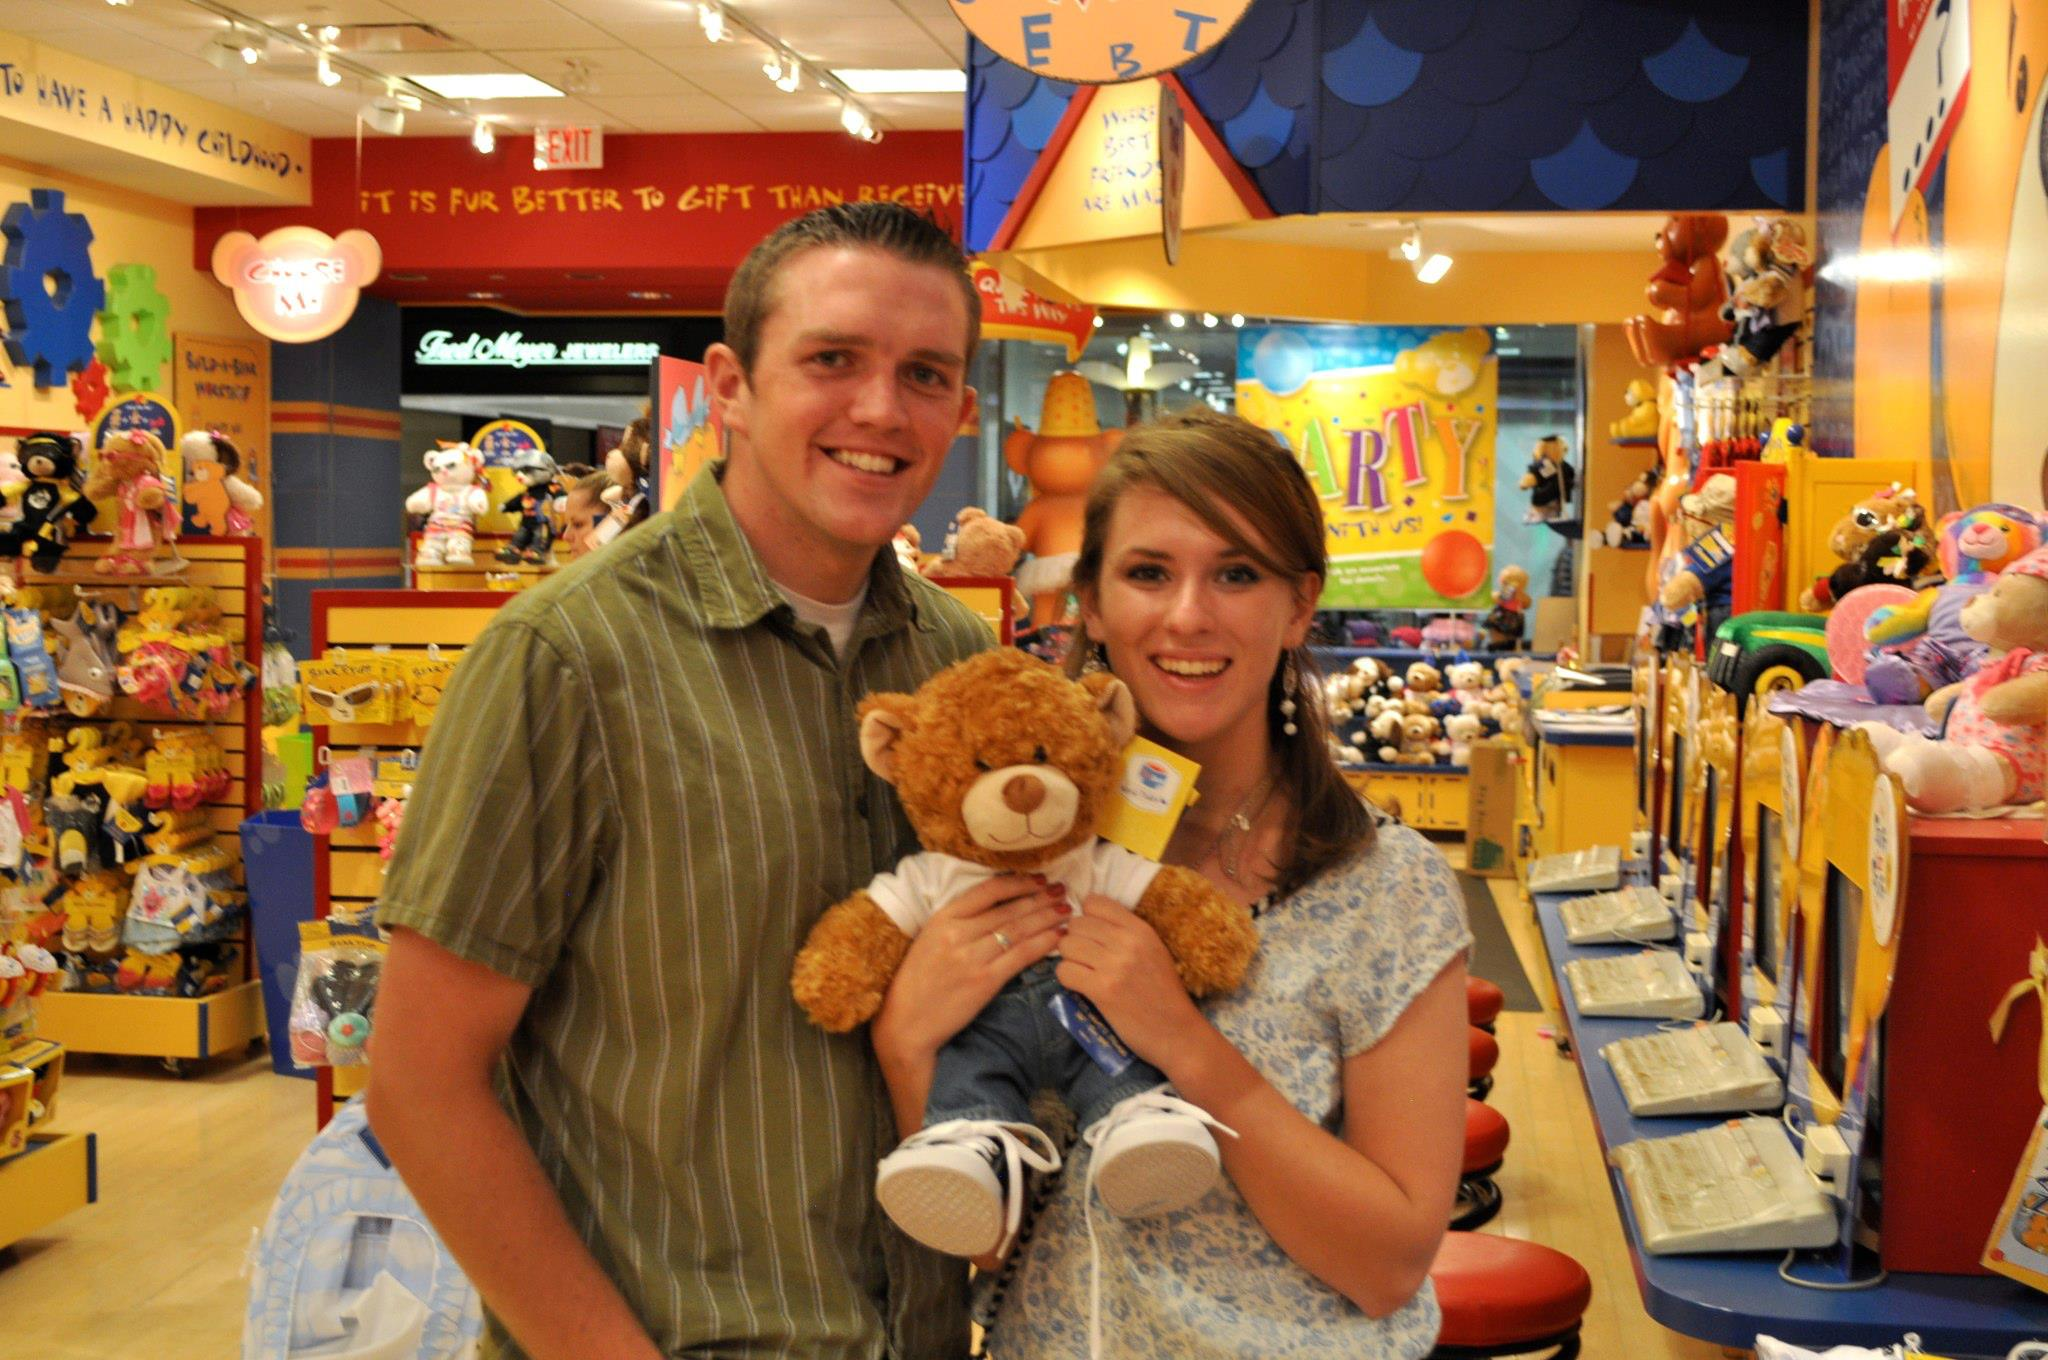 A week before I left to go back to Wyoming, David and I made a Build a Bear with a Utah State shirt. That is where he was going to school. That way I could always remember him. Like I could forget ;)